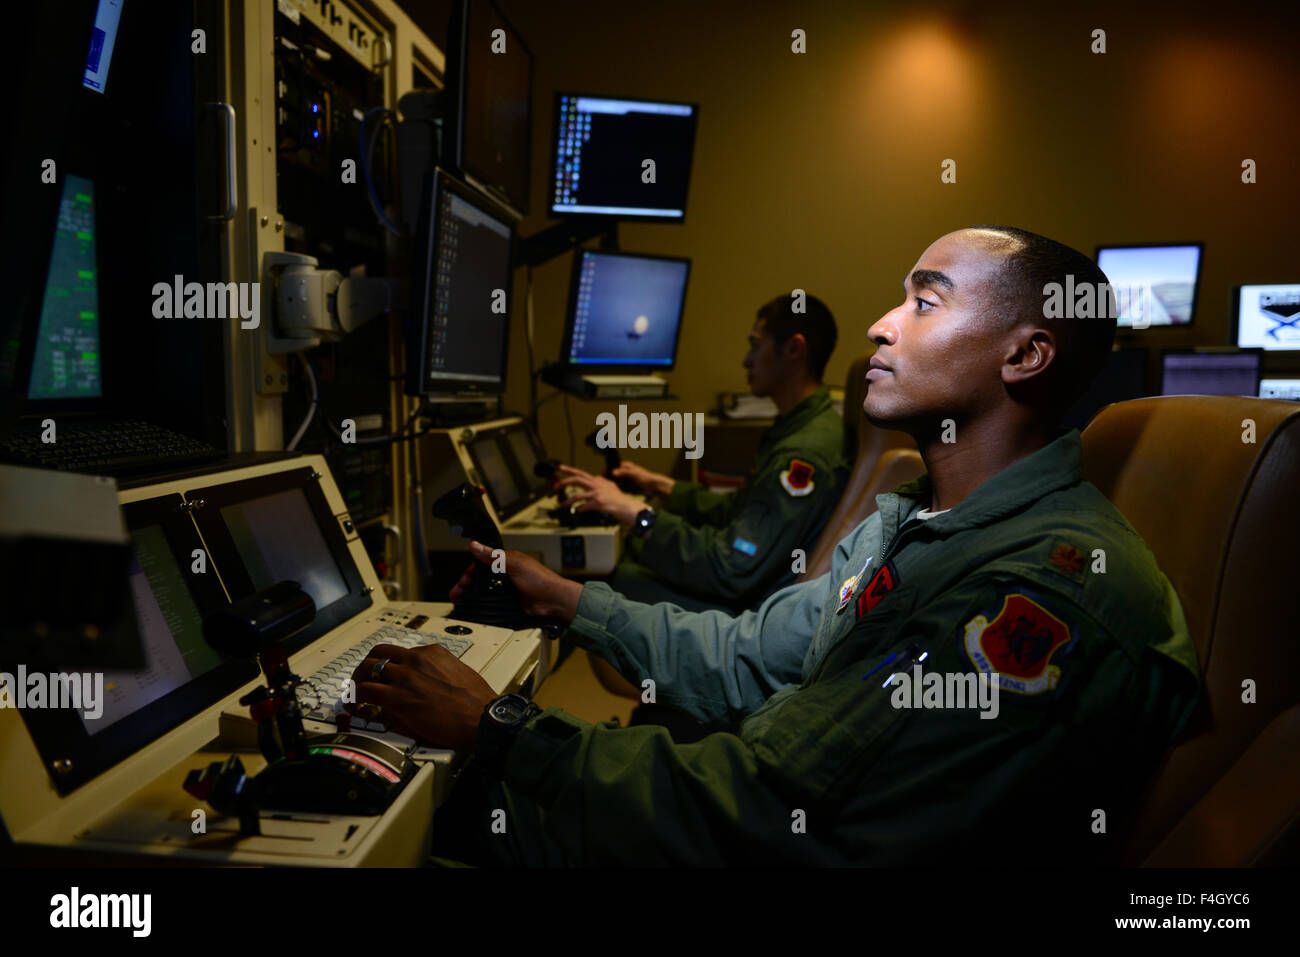 A U.S. Air Force MQ-9 Reaper UAV drone pilot controls an aircraft from the remote console at Creech Air Force Base - Stock Image